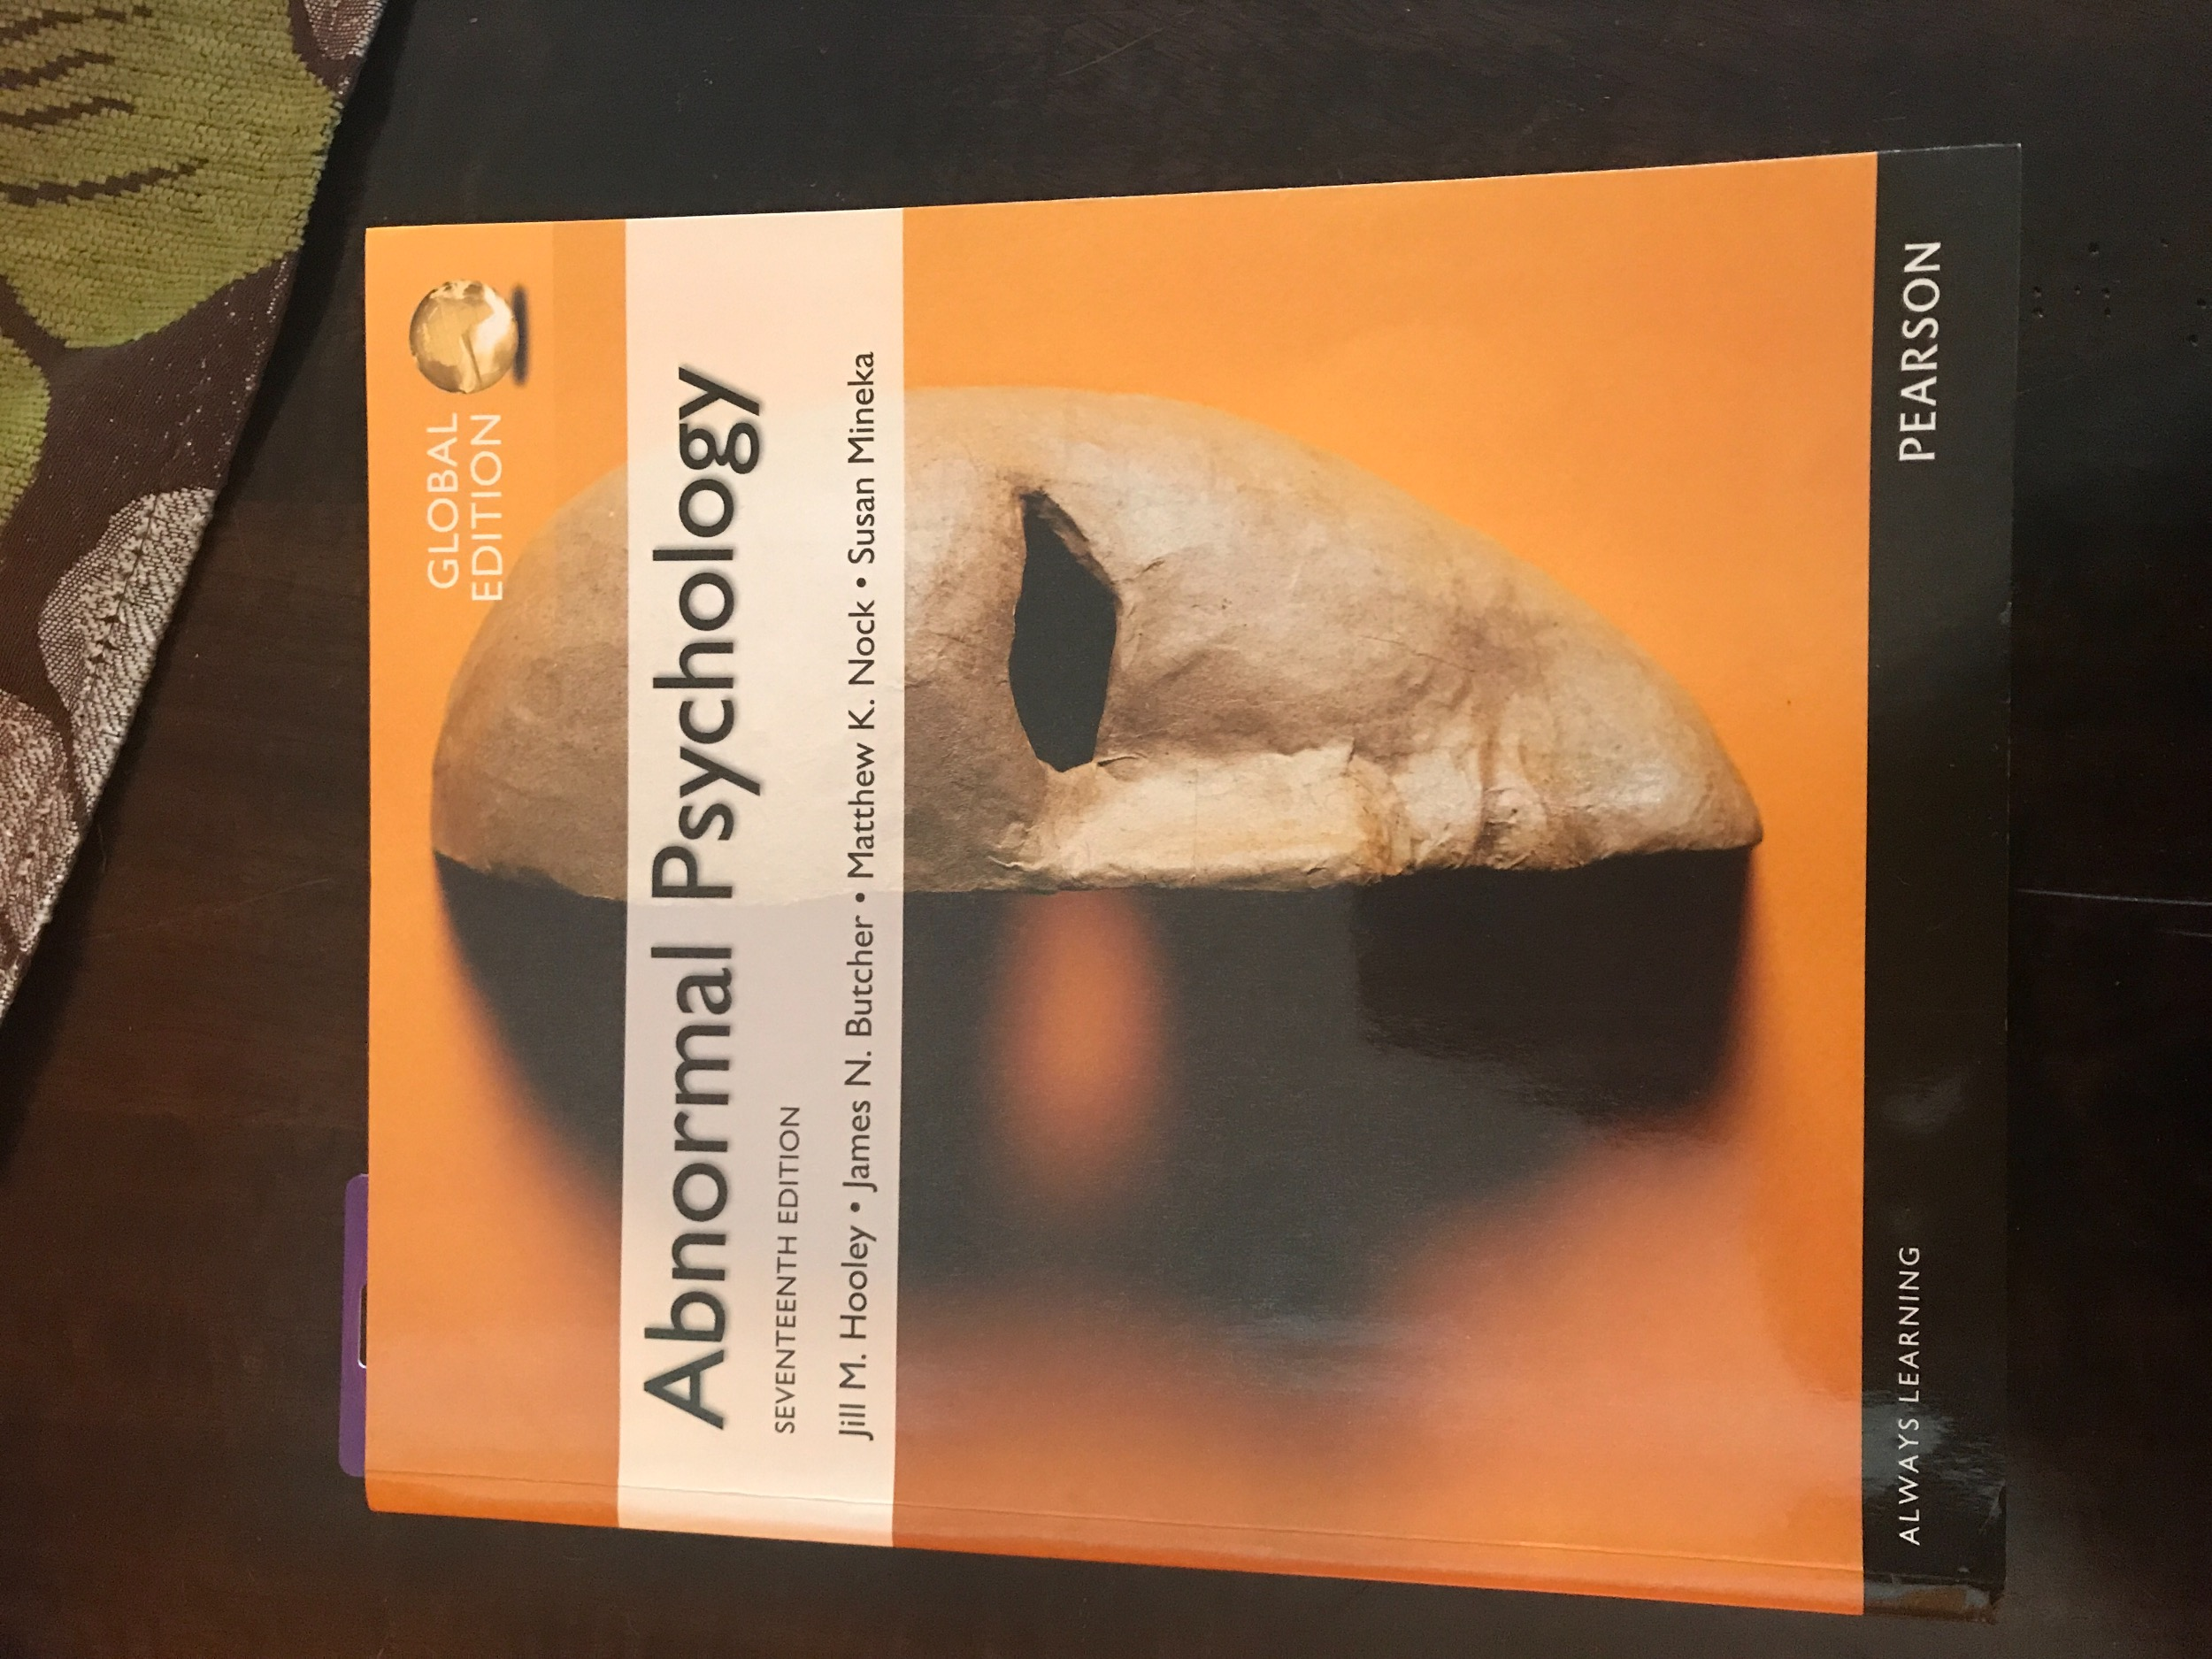 Abnormal psychology 14th edition solution manual abnormal psychology 10th edition kring array 9780133852059 abnormal psychology 17th edition jill m hooley rh prioritytextbook com fandeluxe Choice Image